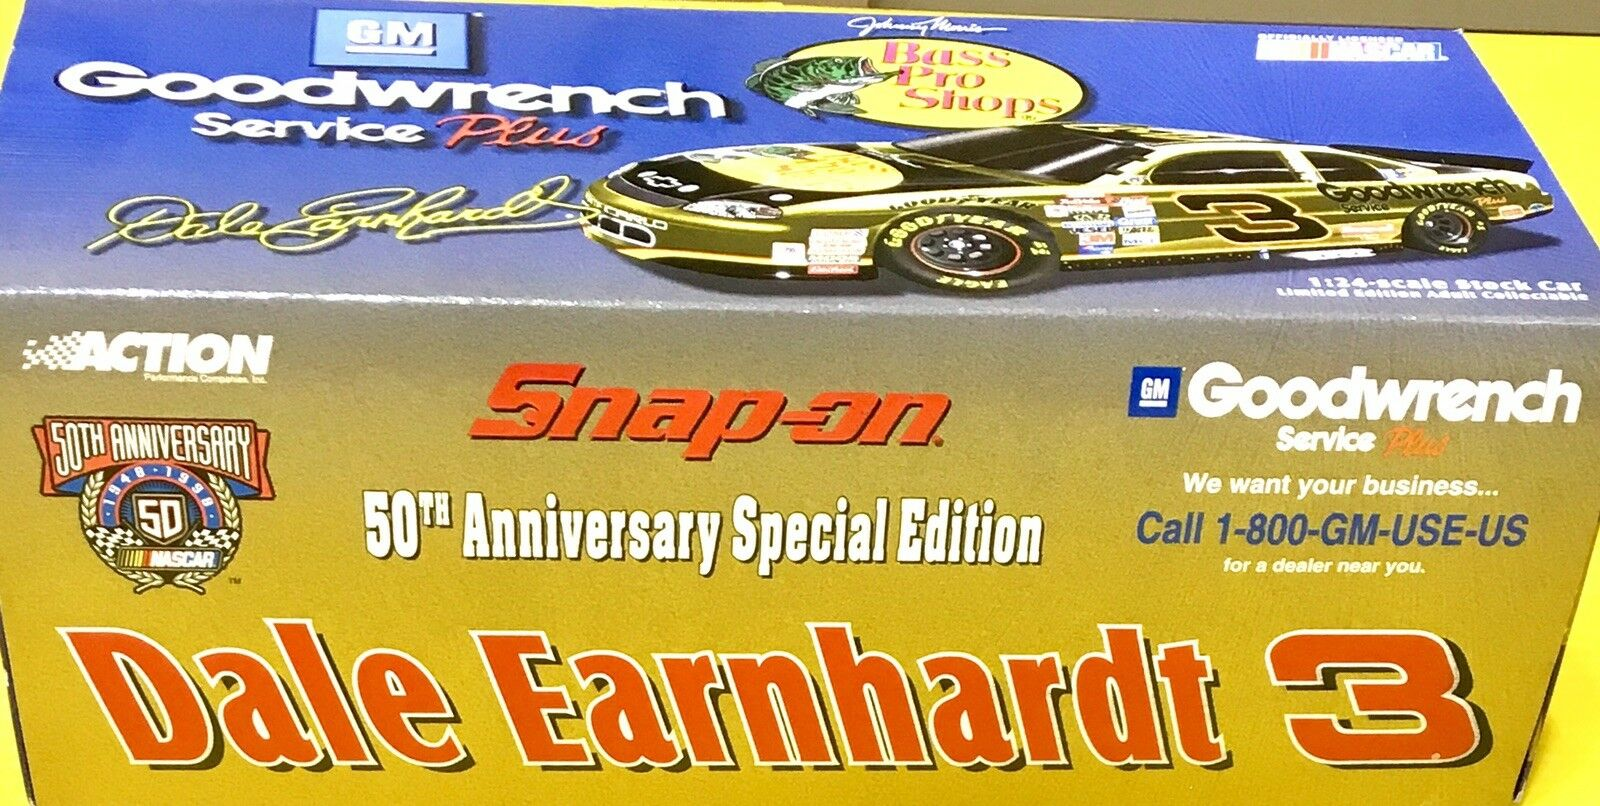 Action 50th Anniversary Special Edition NASCAR Dale Earnhardt